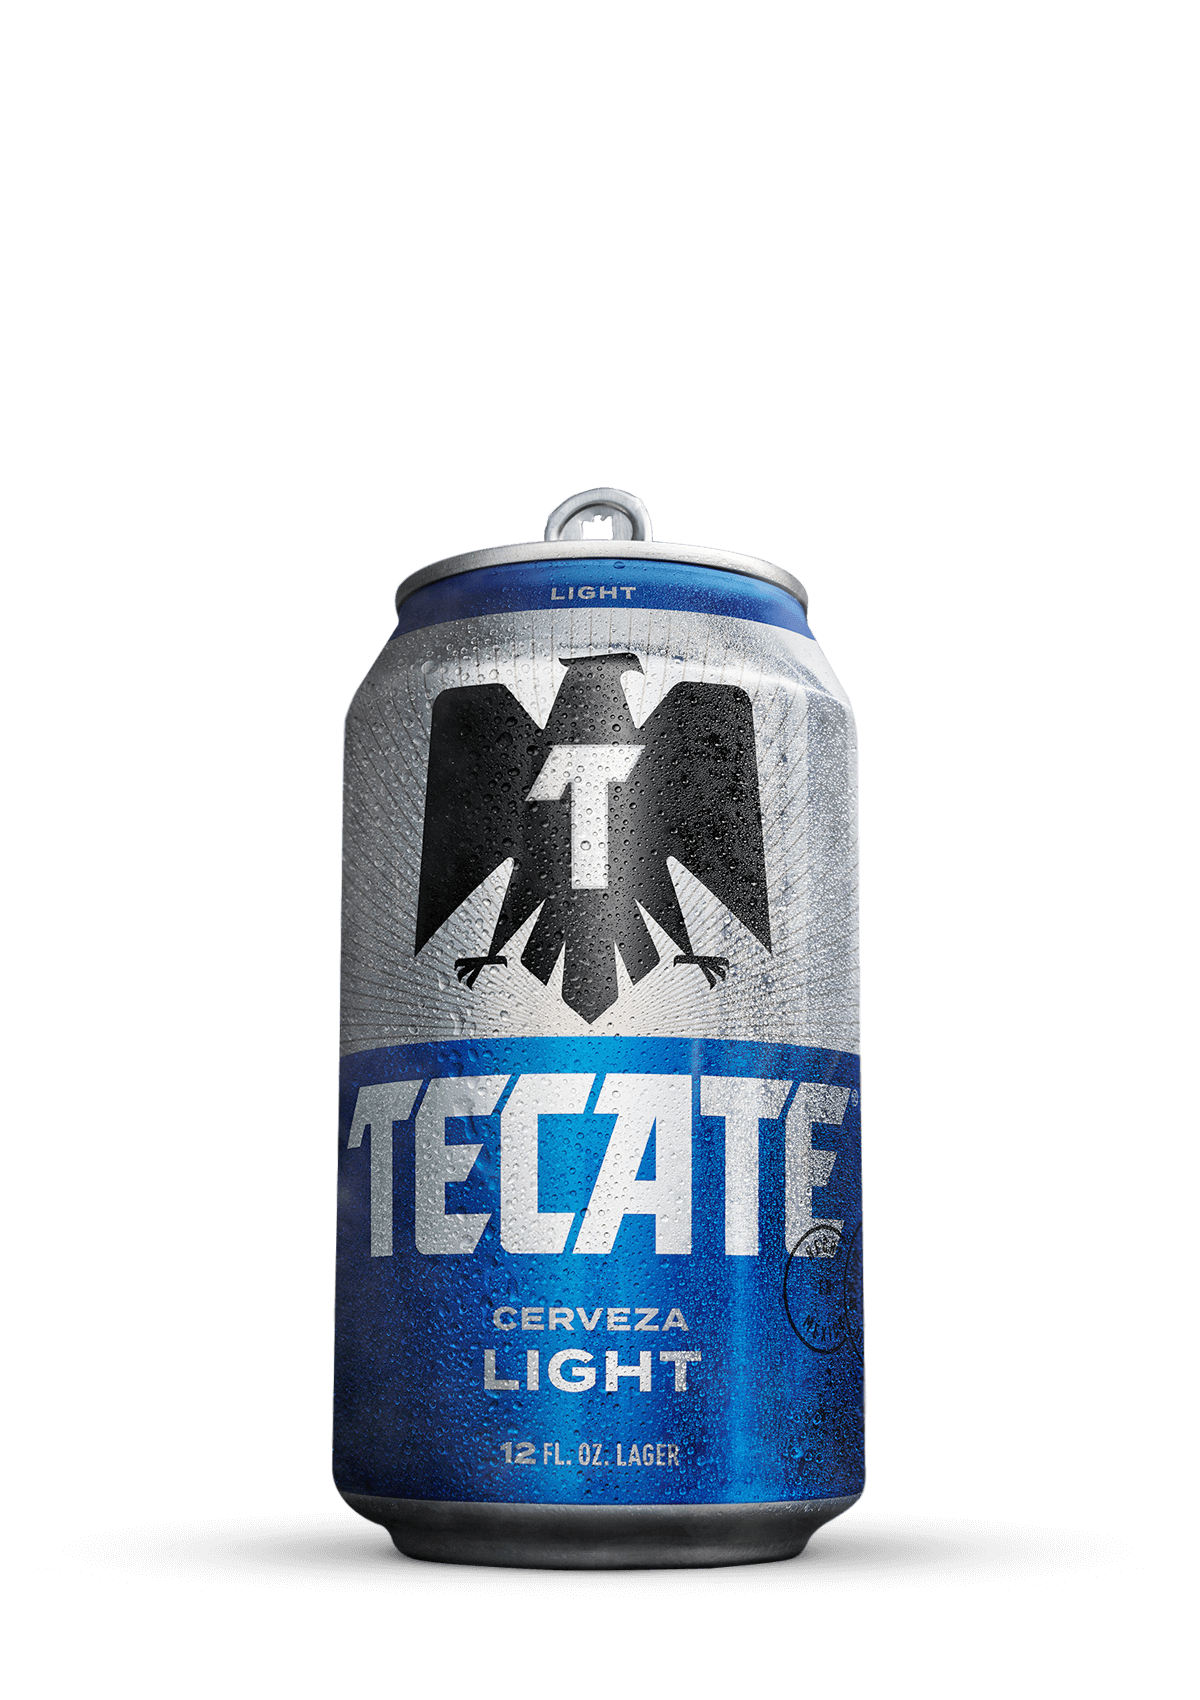 Tecate® Light 3.9% alc. vol. 12 oz blue and silver can.